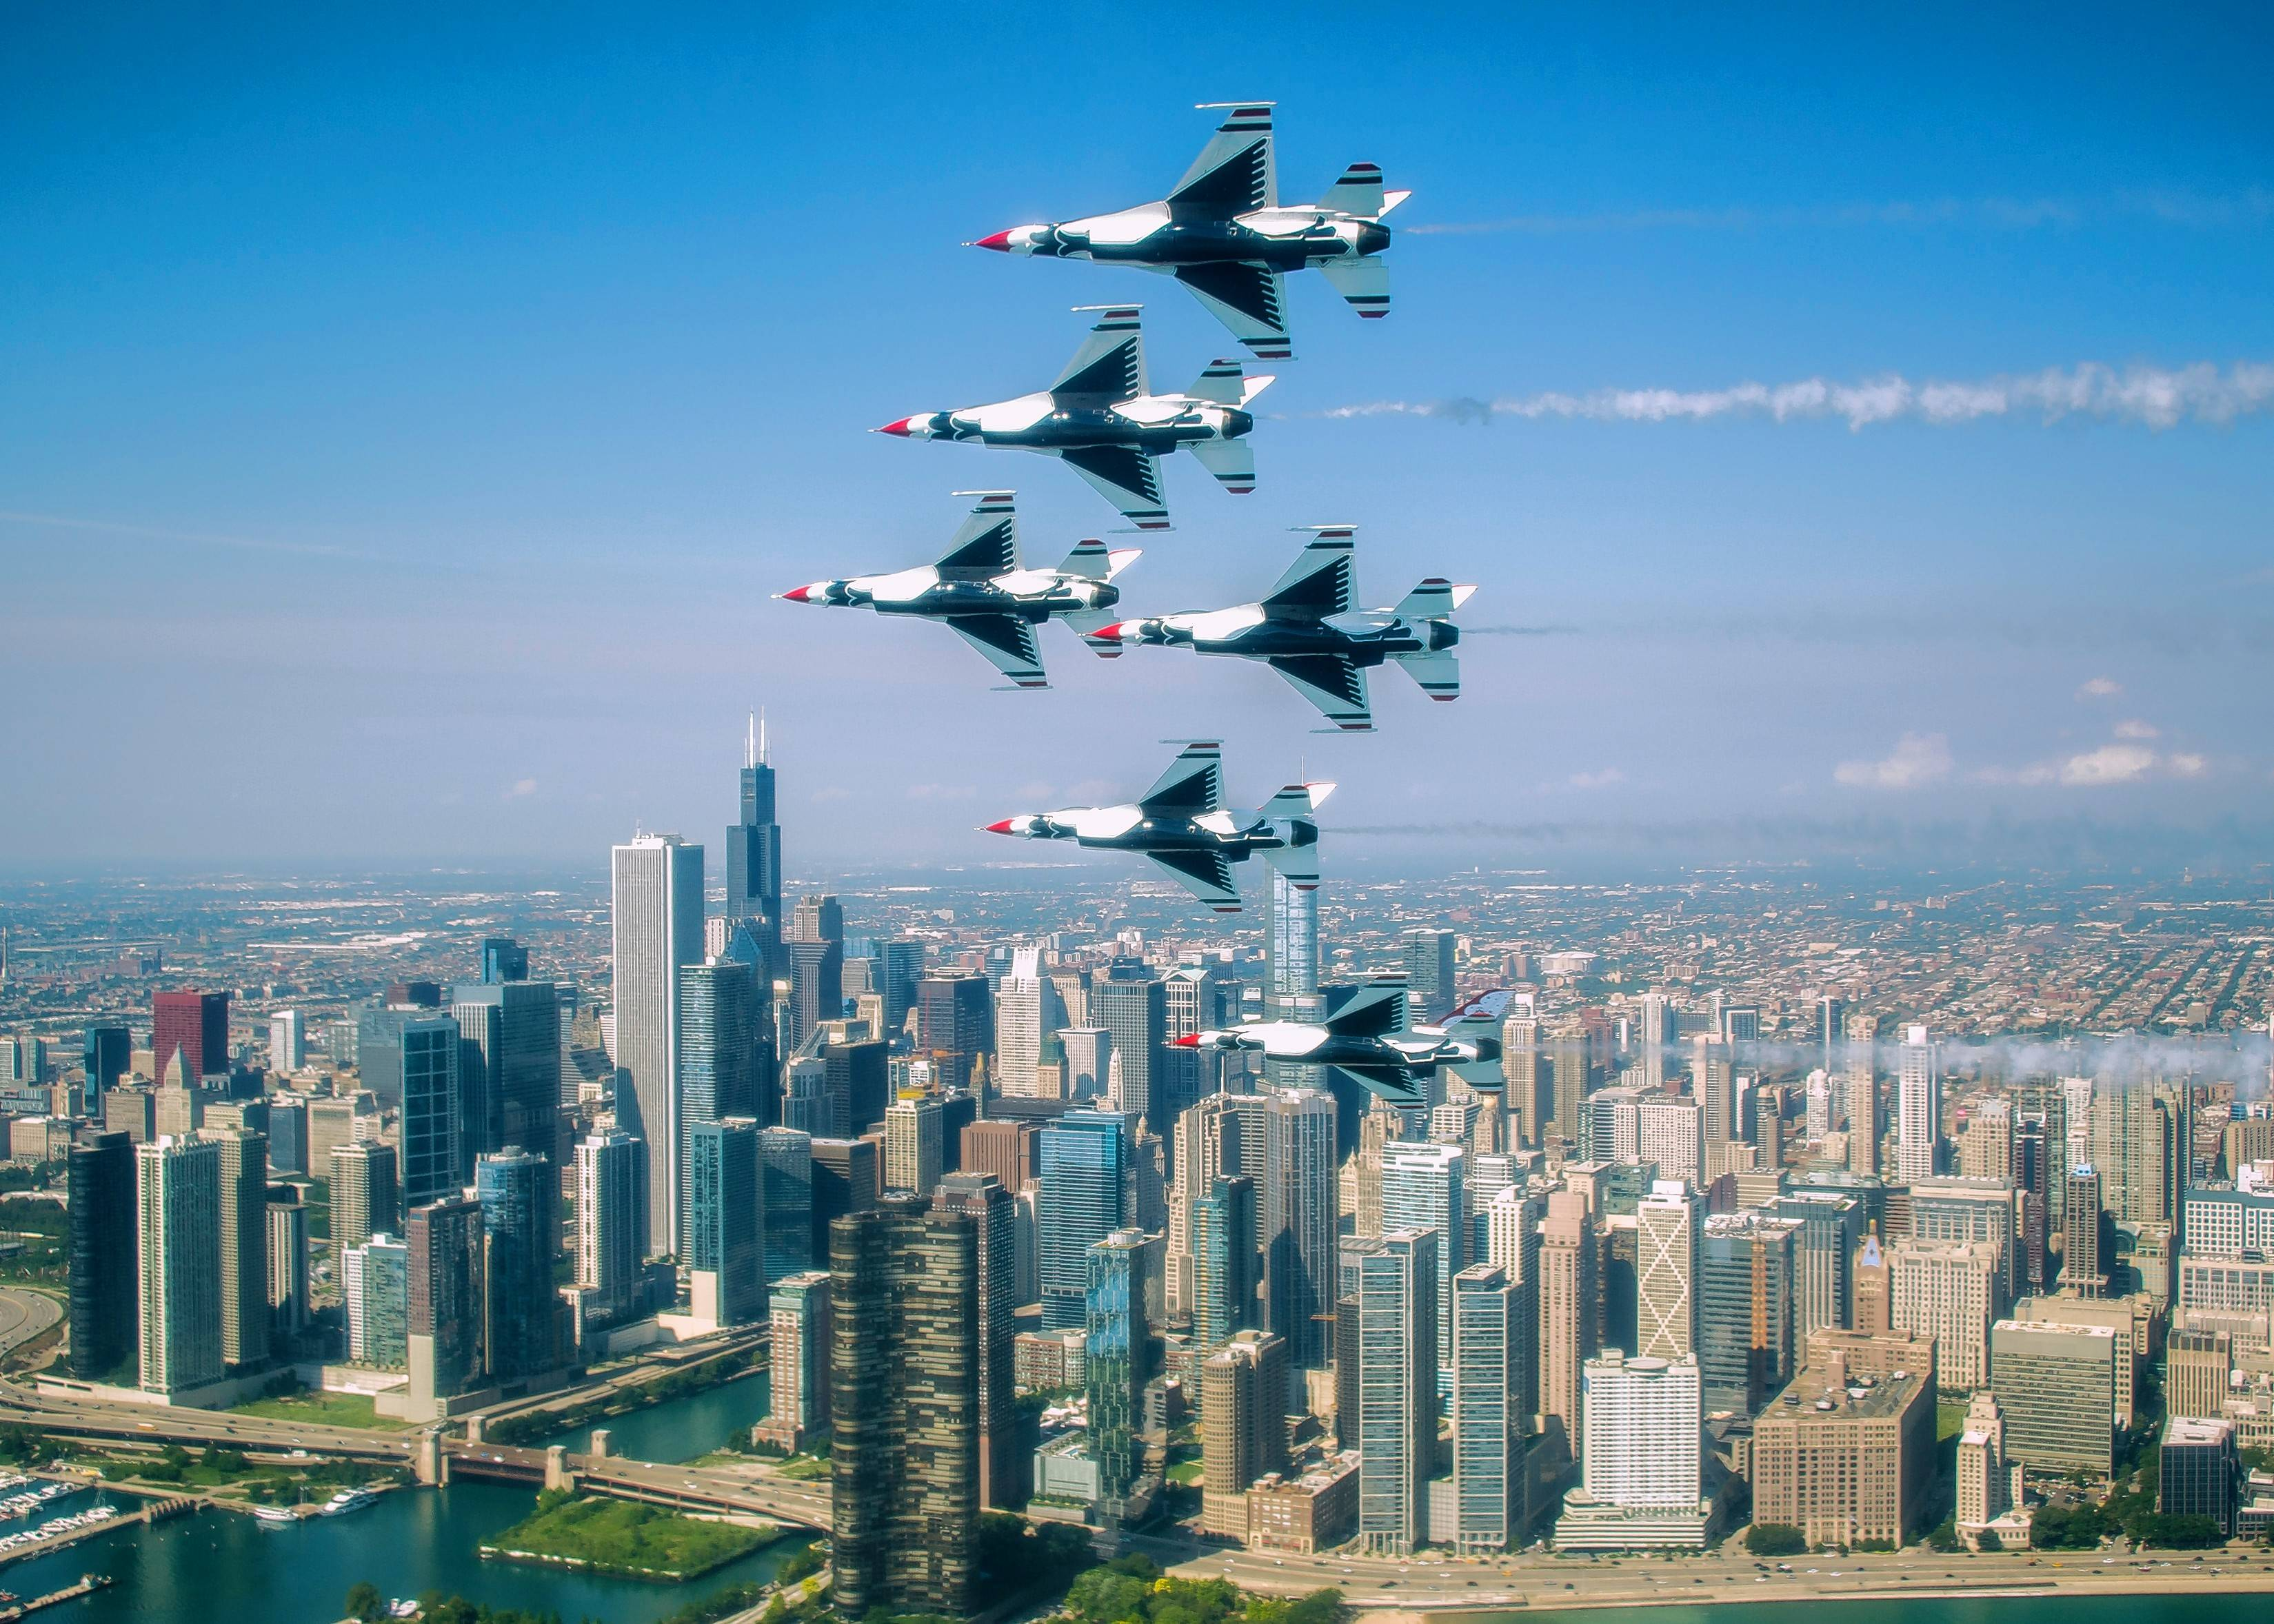 The U.S. Air Force Thunderbirds return to the Chicago Air and Water Show in 2018.